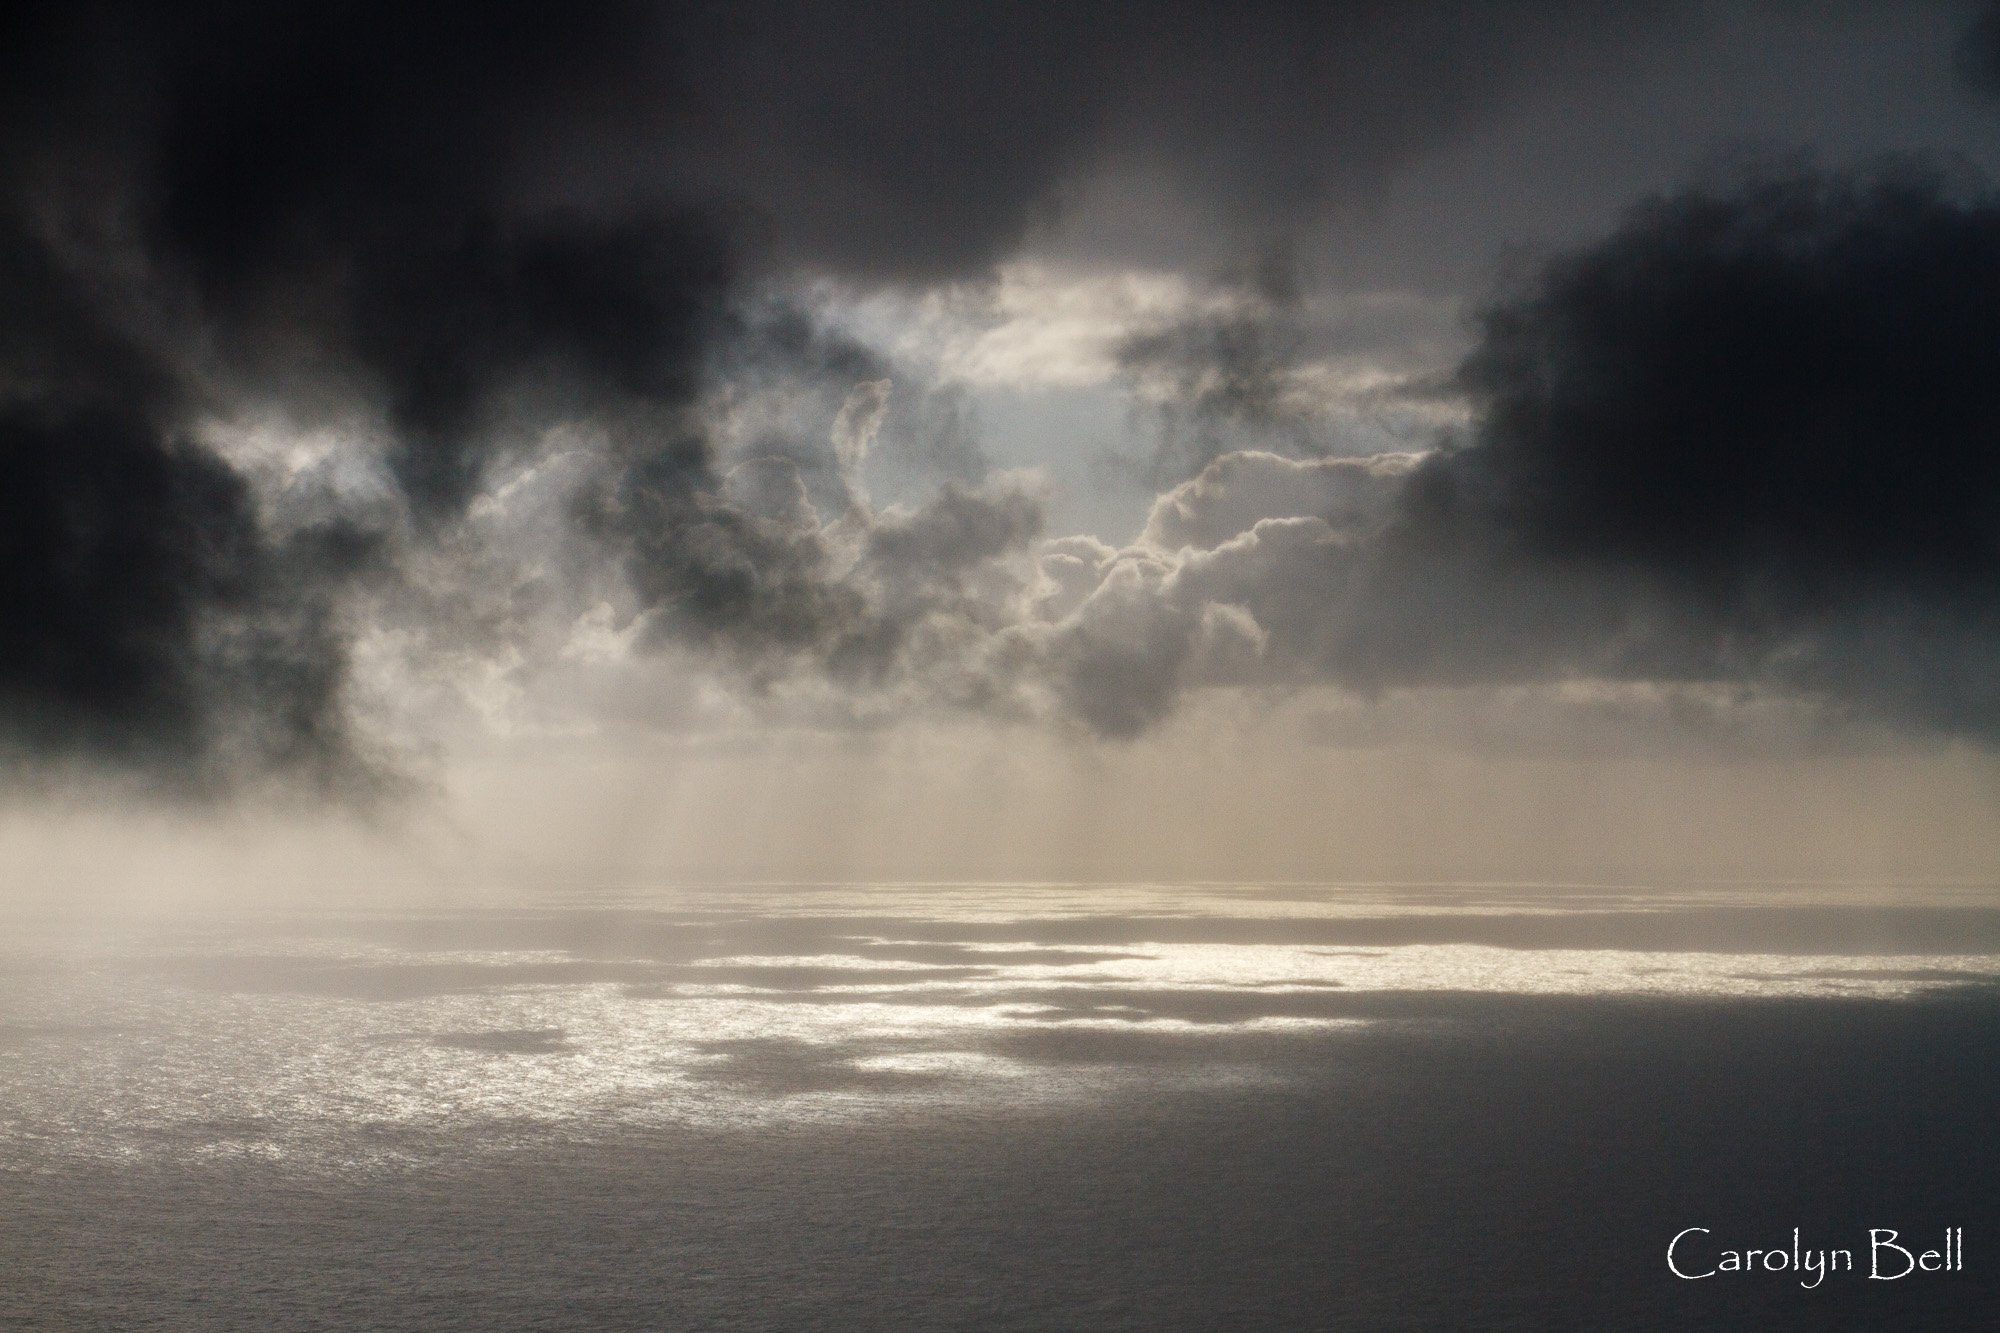 Squall at sea from Quebrada Nova, Madeira